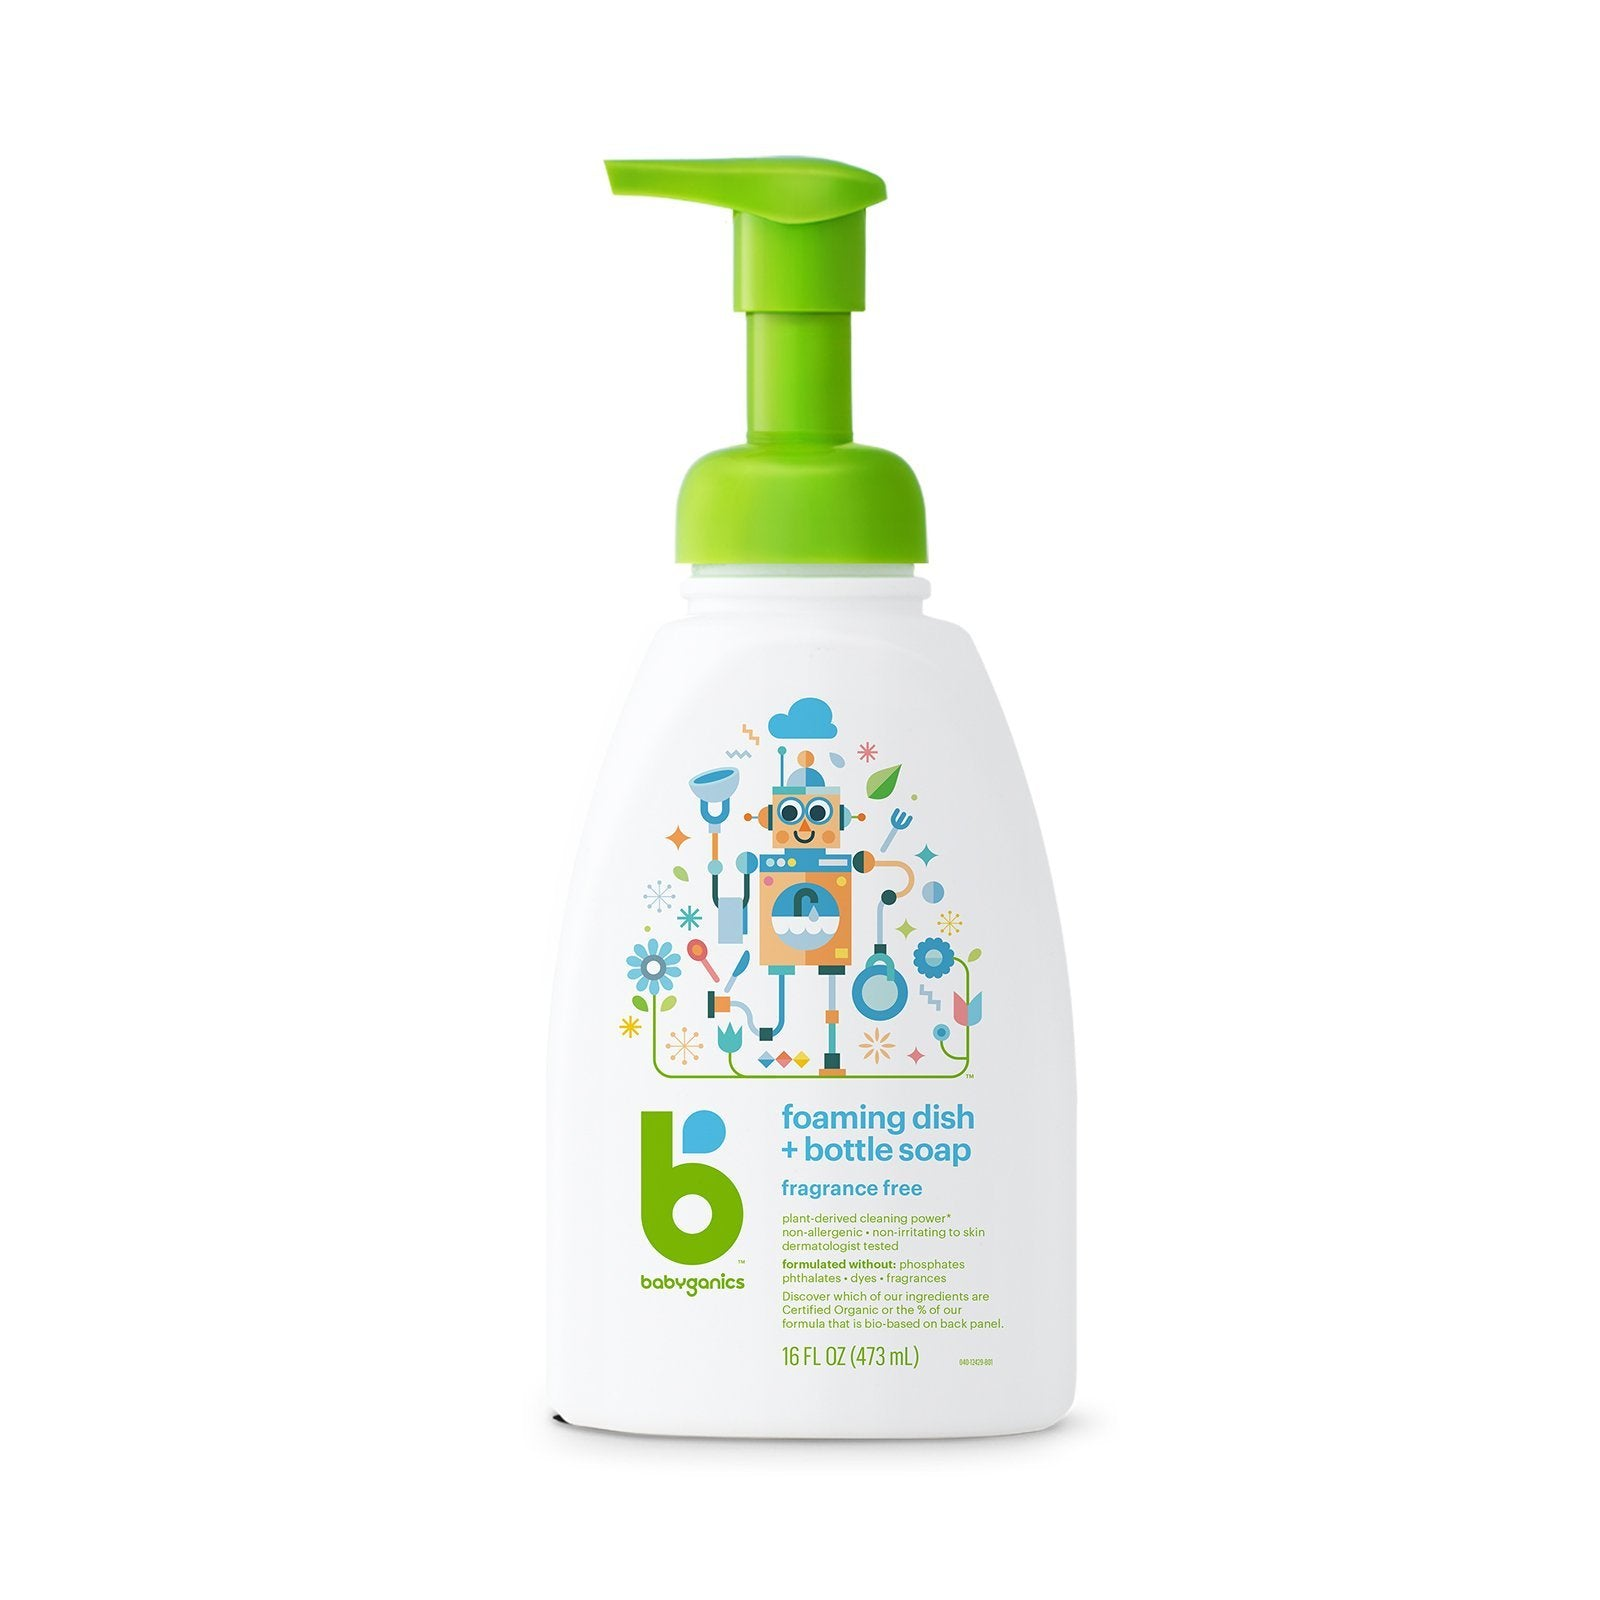 babyganics foaming dish & bottle soap, 473ml, fragrance free